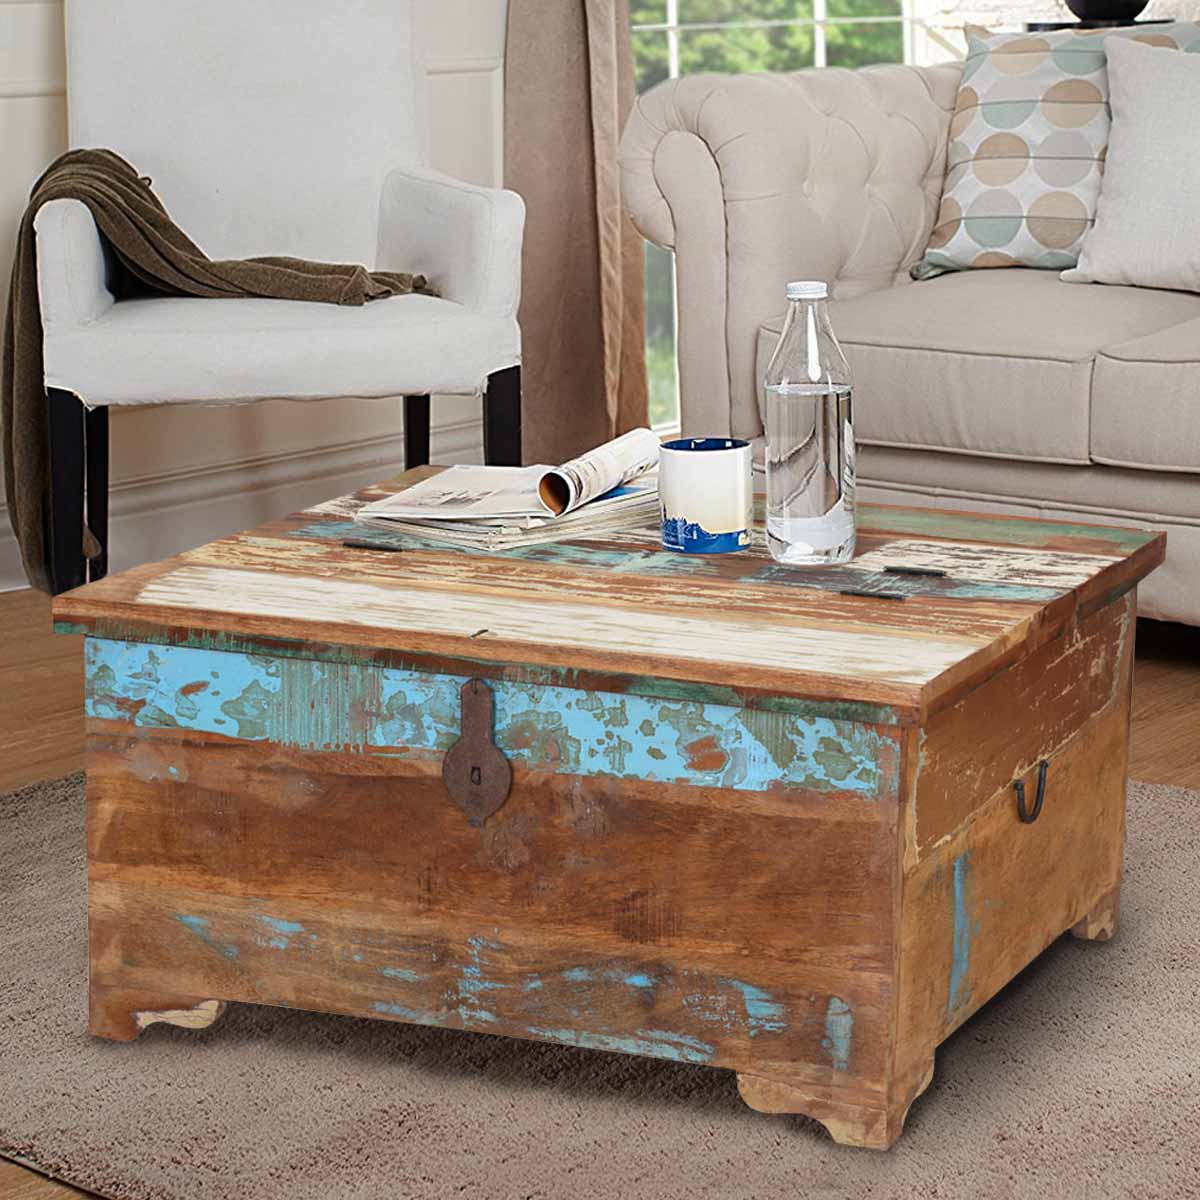 Appalachia Handcrafted Reclaimed Wood Coffee Table Trunk